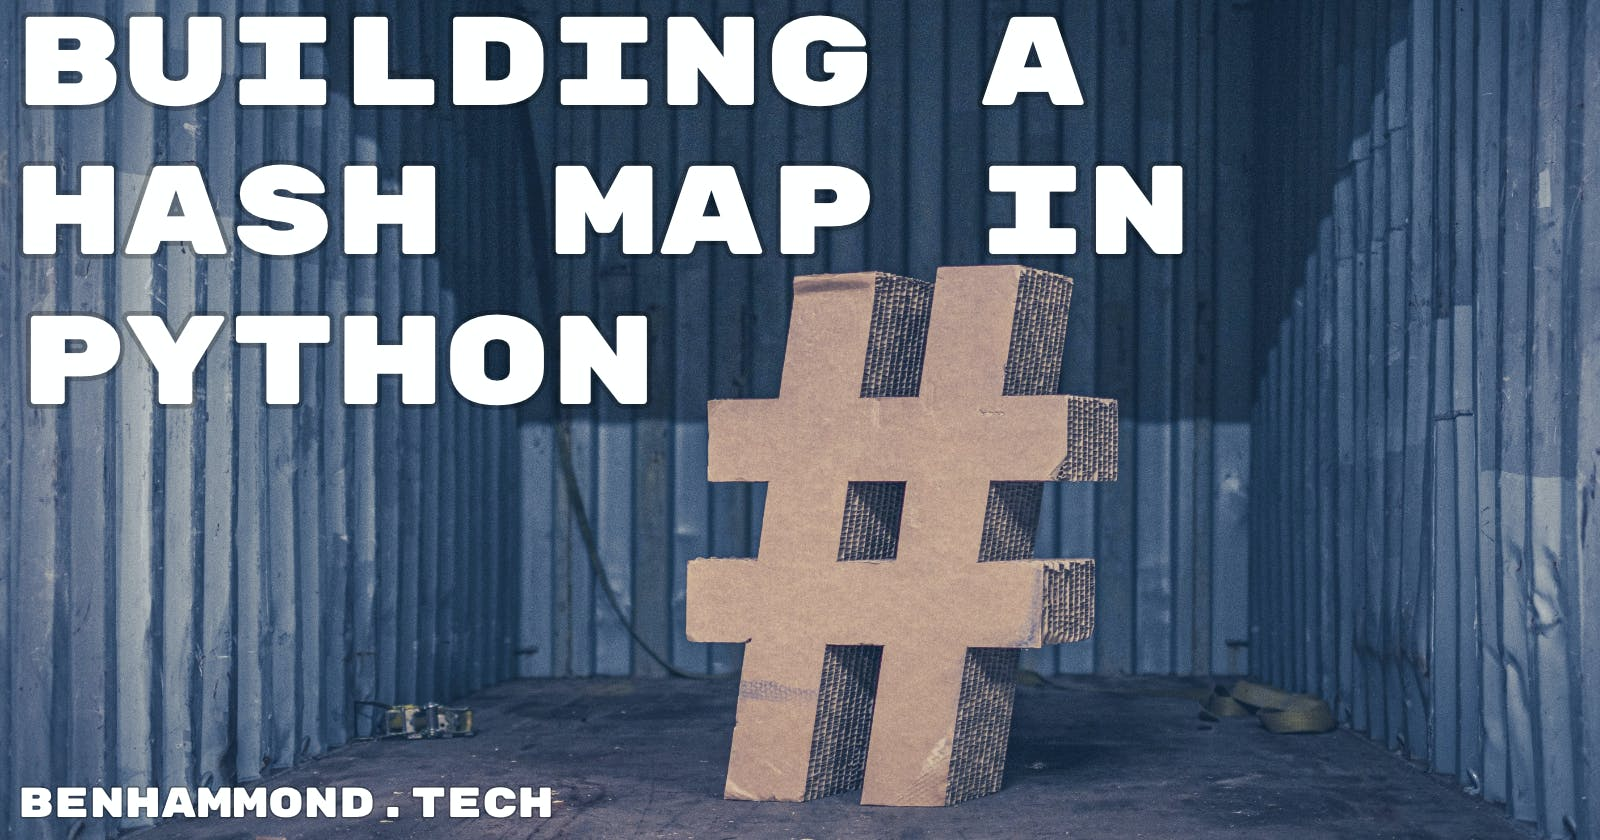 Building a Hash Map in Python